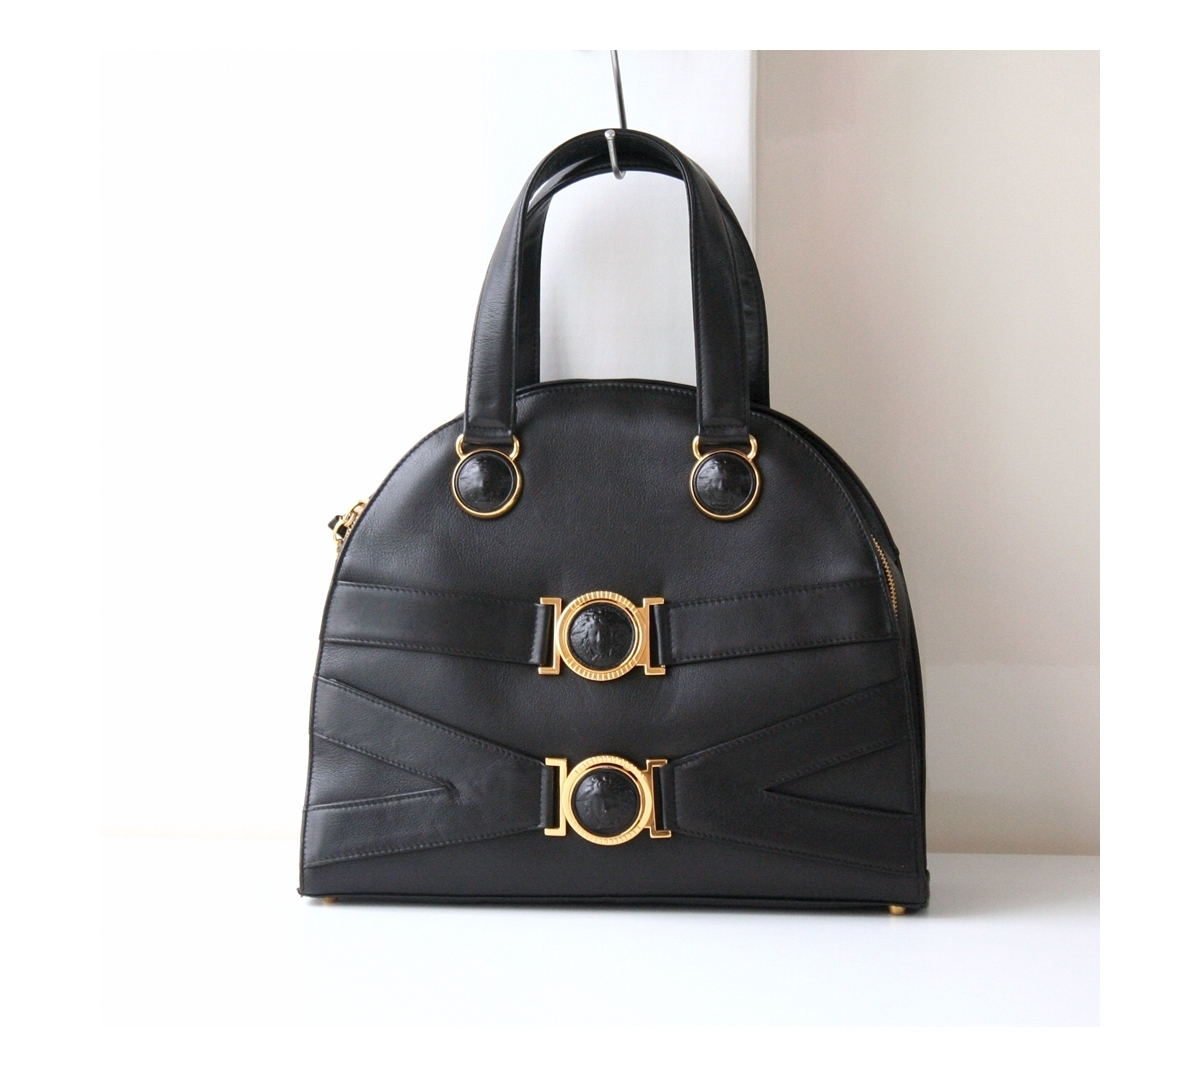 c76d87d0c049 Gianni Versace Bag Black Medusa Leather Tote and 50 similar items. 160919  01 01